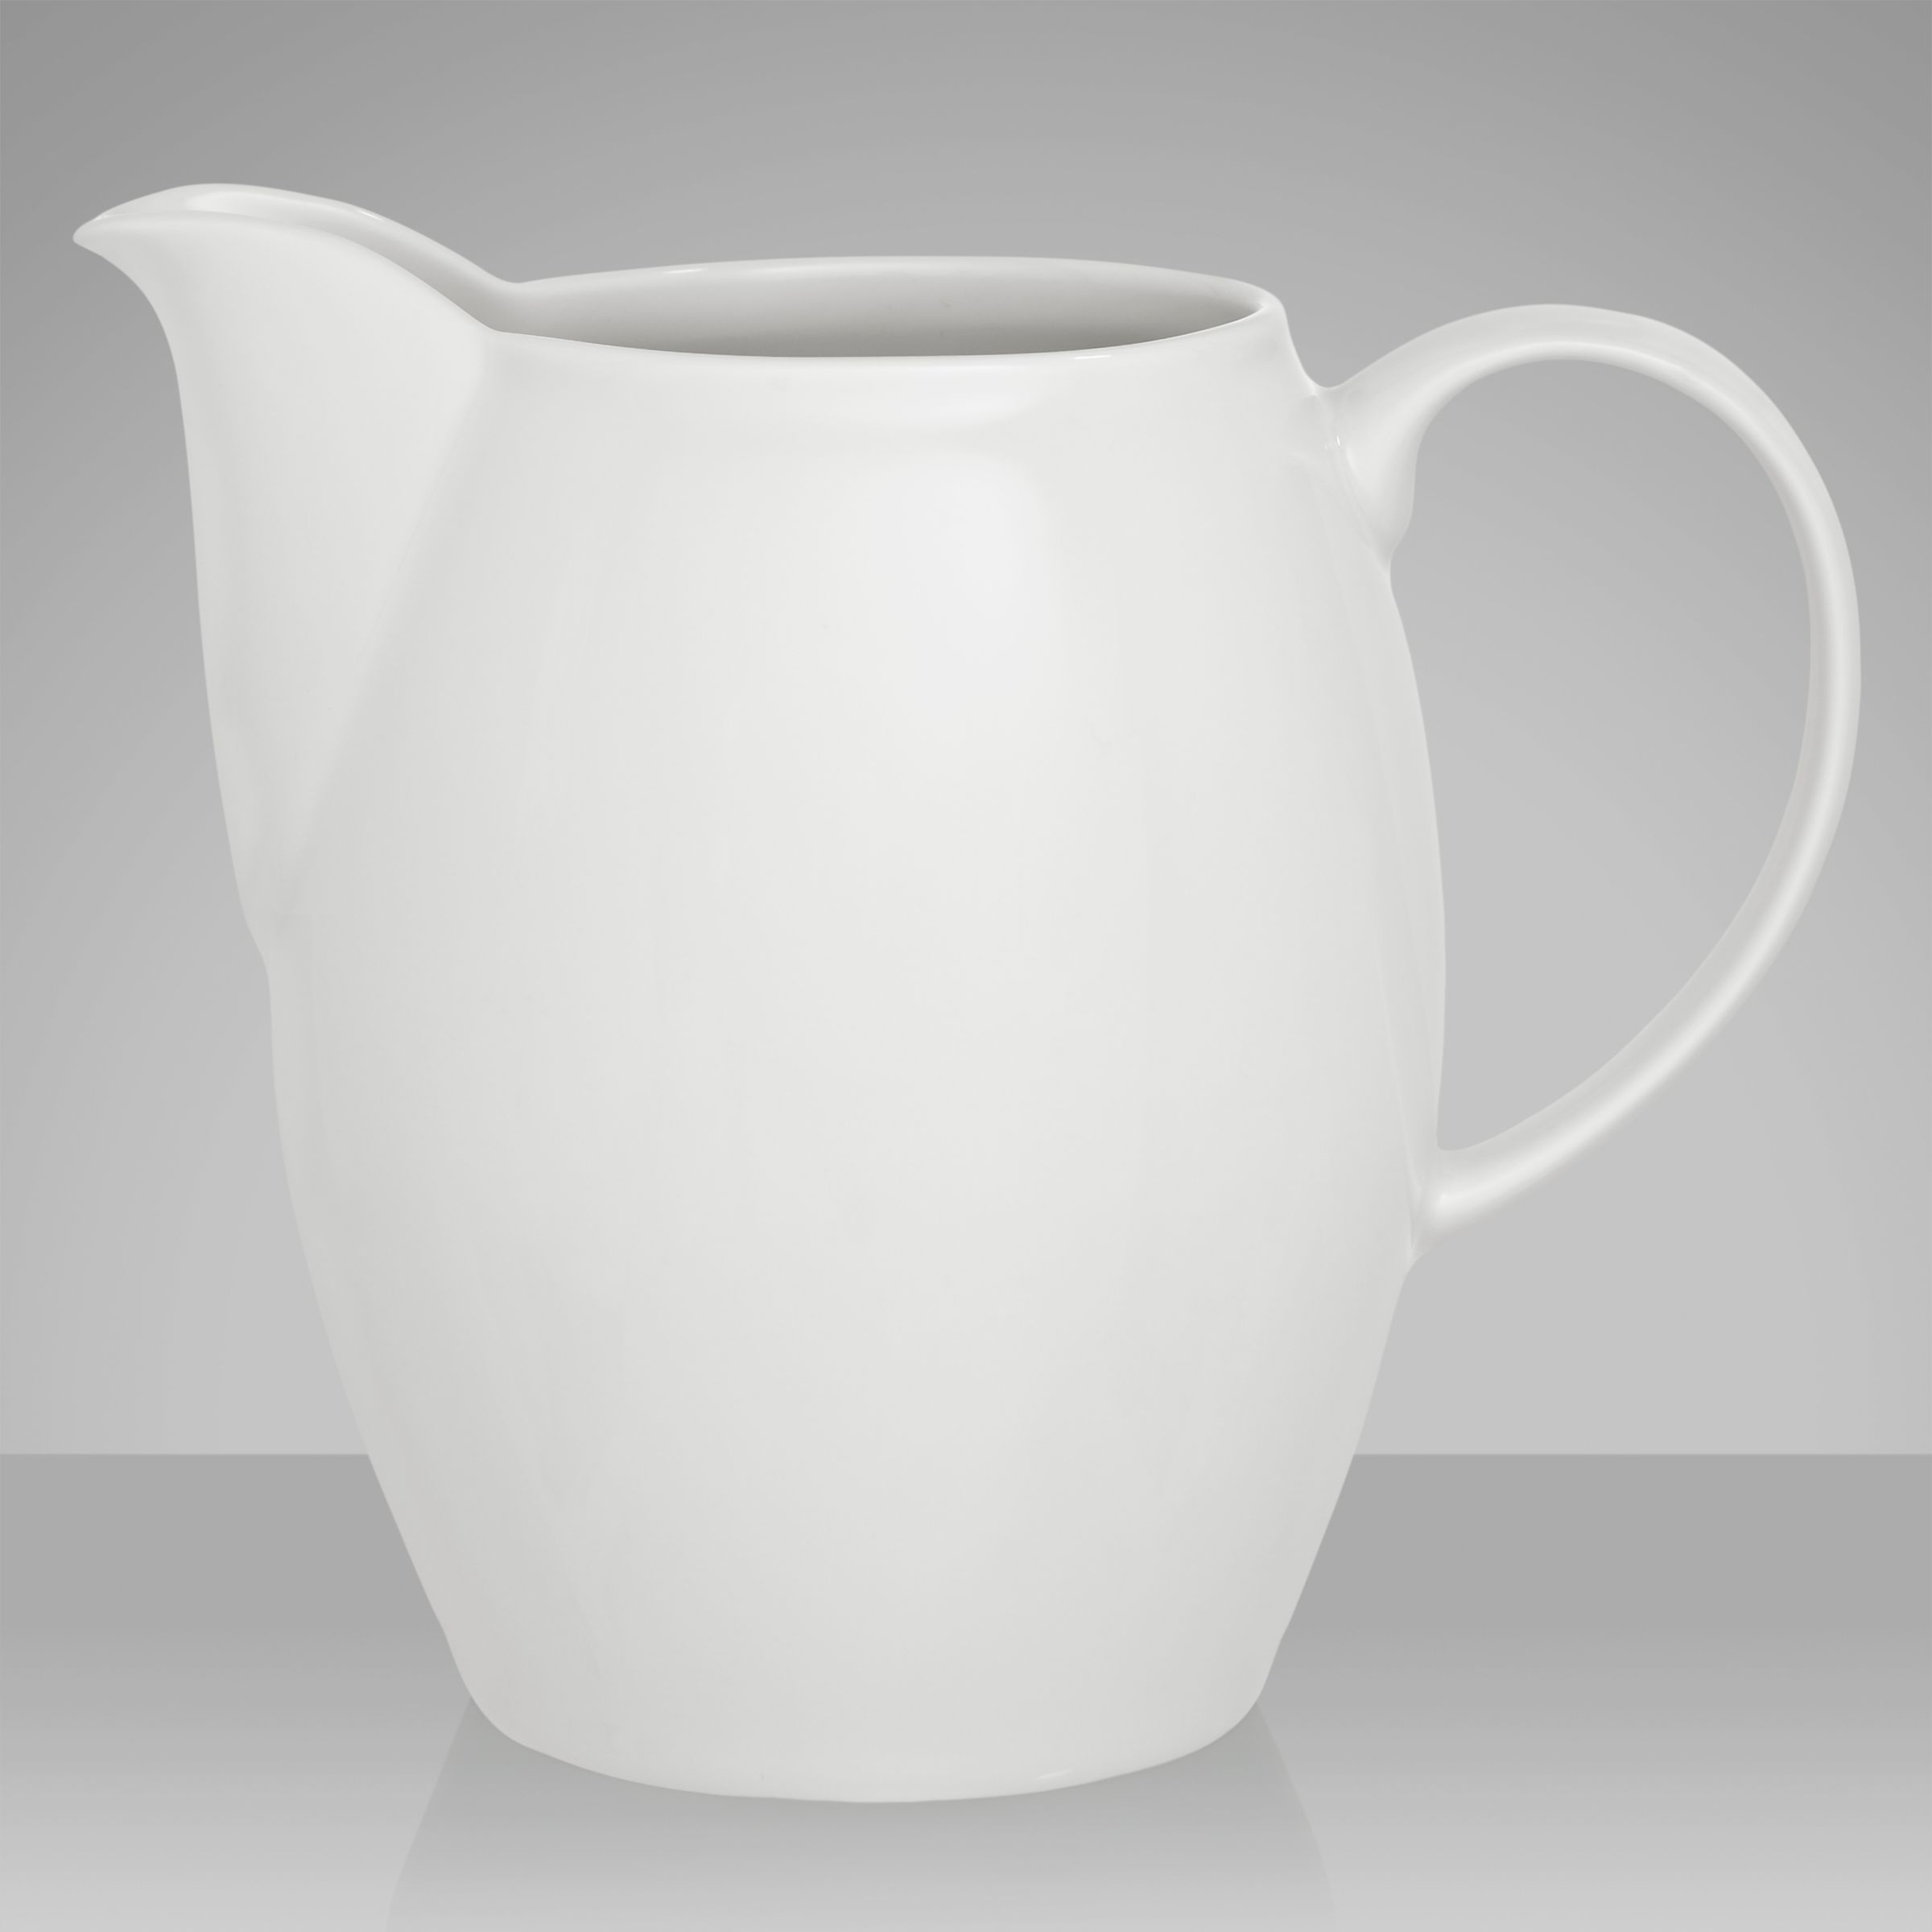 Denby White Large Jug, 0.8L